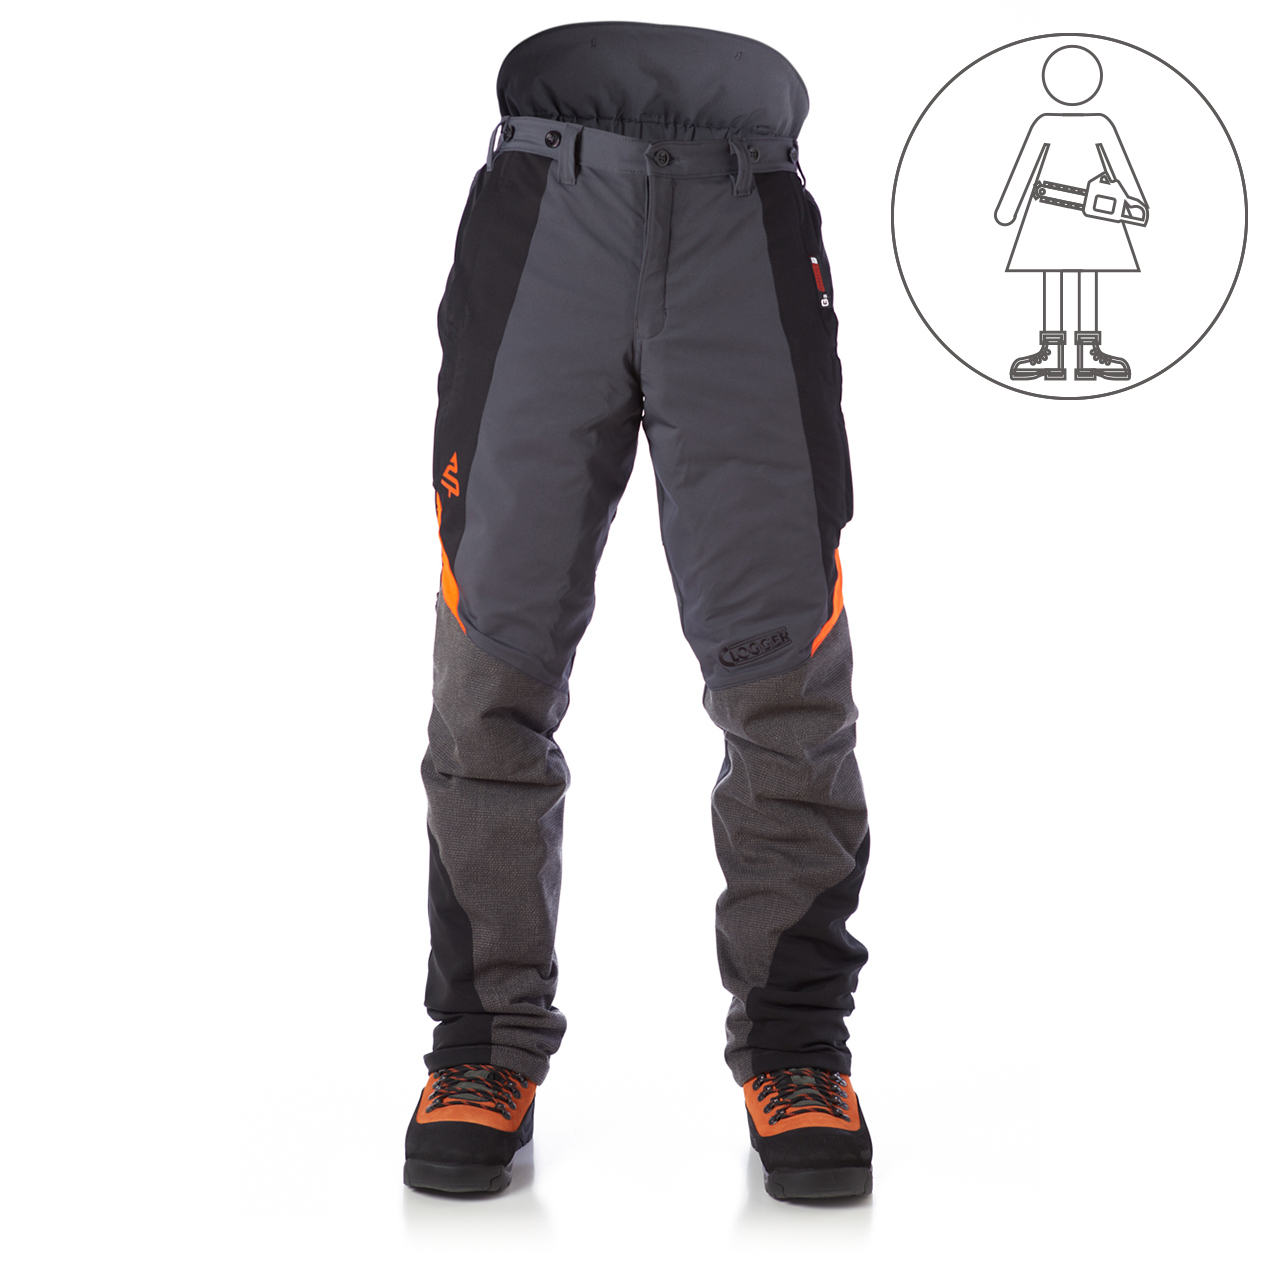 Clogger Ascend All Season Women's Chainsaw Pants